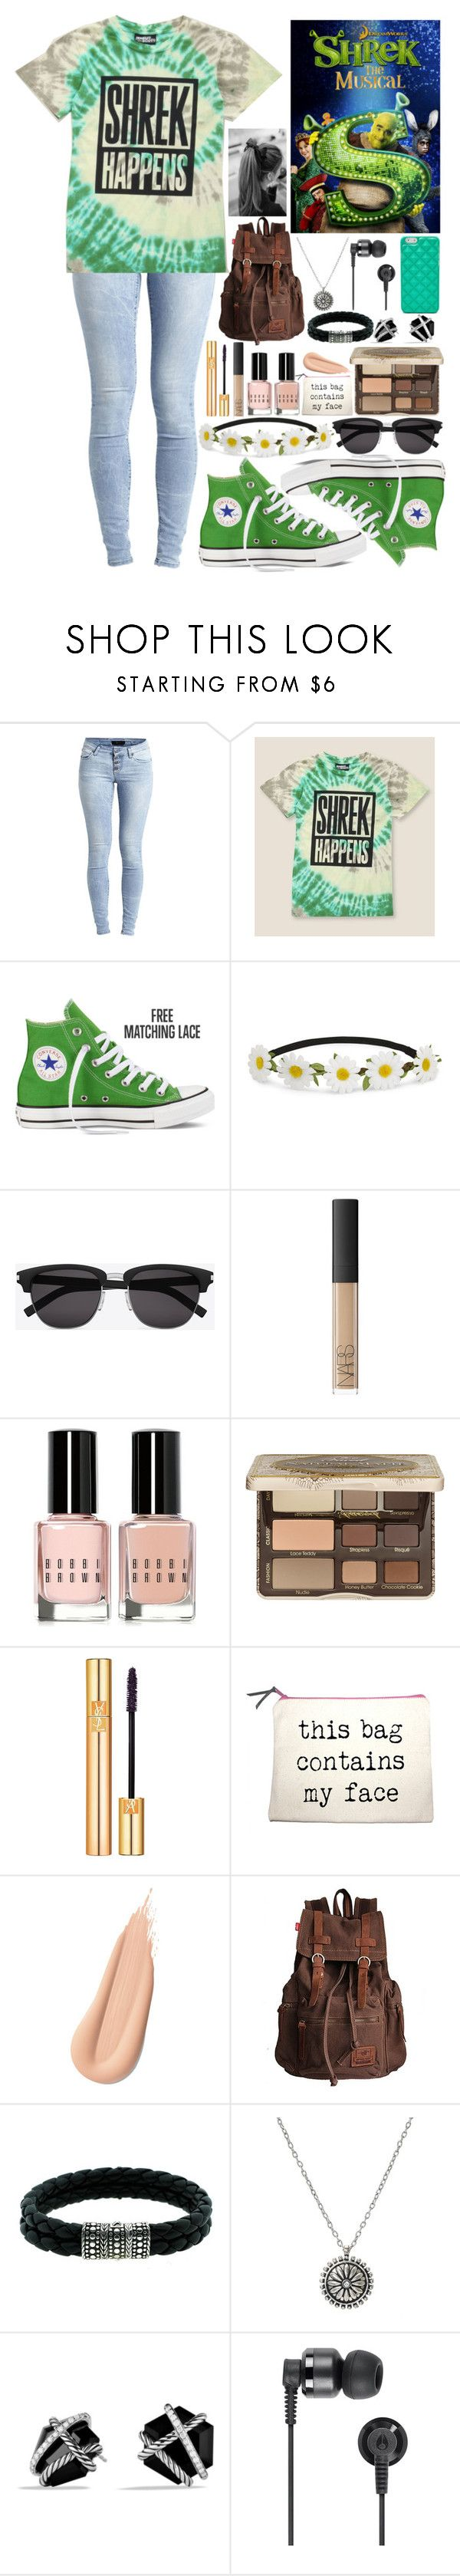 """Goin to see Shrek the Musical!!!! :D"" by motionlessinrave ❤ liked on Polyvore featuring Object Collectors Item, Jeremy Scott, Converse, Impulse, Yves Saint Laurent, NARS Cosmetics, Bobbi Brown Cosmetics, Too Faced Cosmetics, John Hardy and David Yurman"